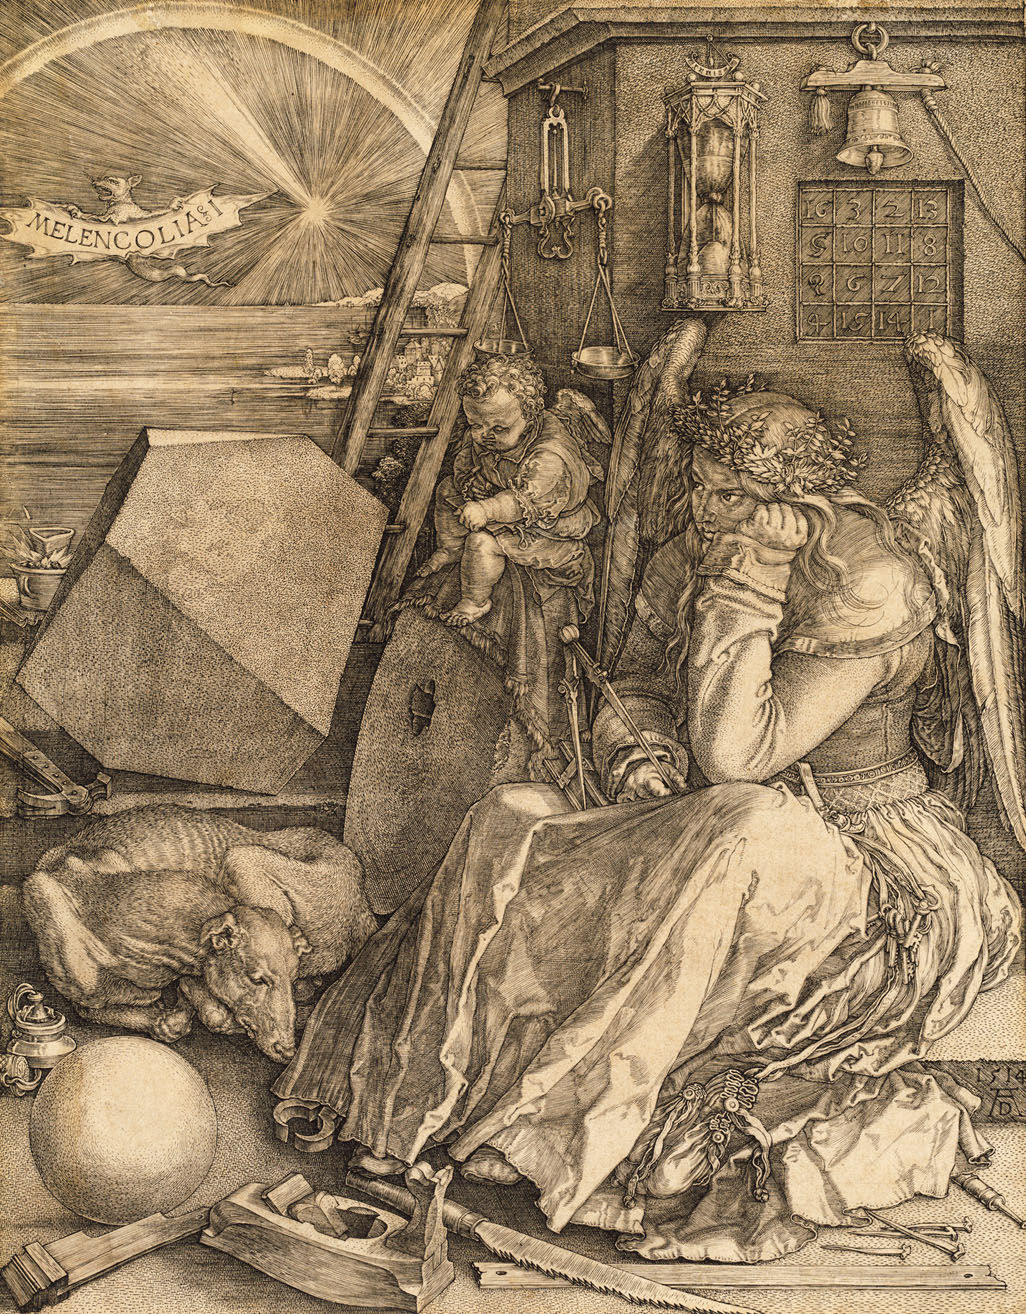 This woodcut, the Melancholia 1 by Albrecht Dürer, has vexed many art historians with its esoteric and mysterious images.  Yet, we know that Dürer is, in his own way, expressing the angst and pessimism that would surround the shift from the Medieval to the Early Modern world.  This woodcut was finished in 1514, three years before the Reformation's formal shot across the bough of the Roman church